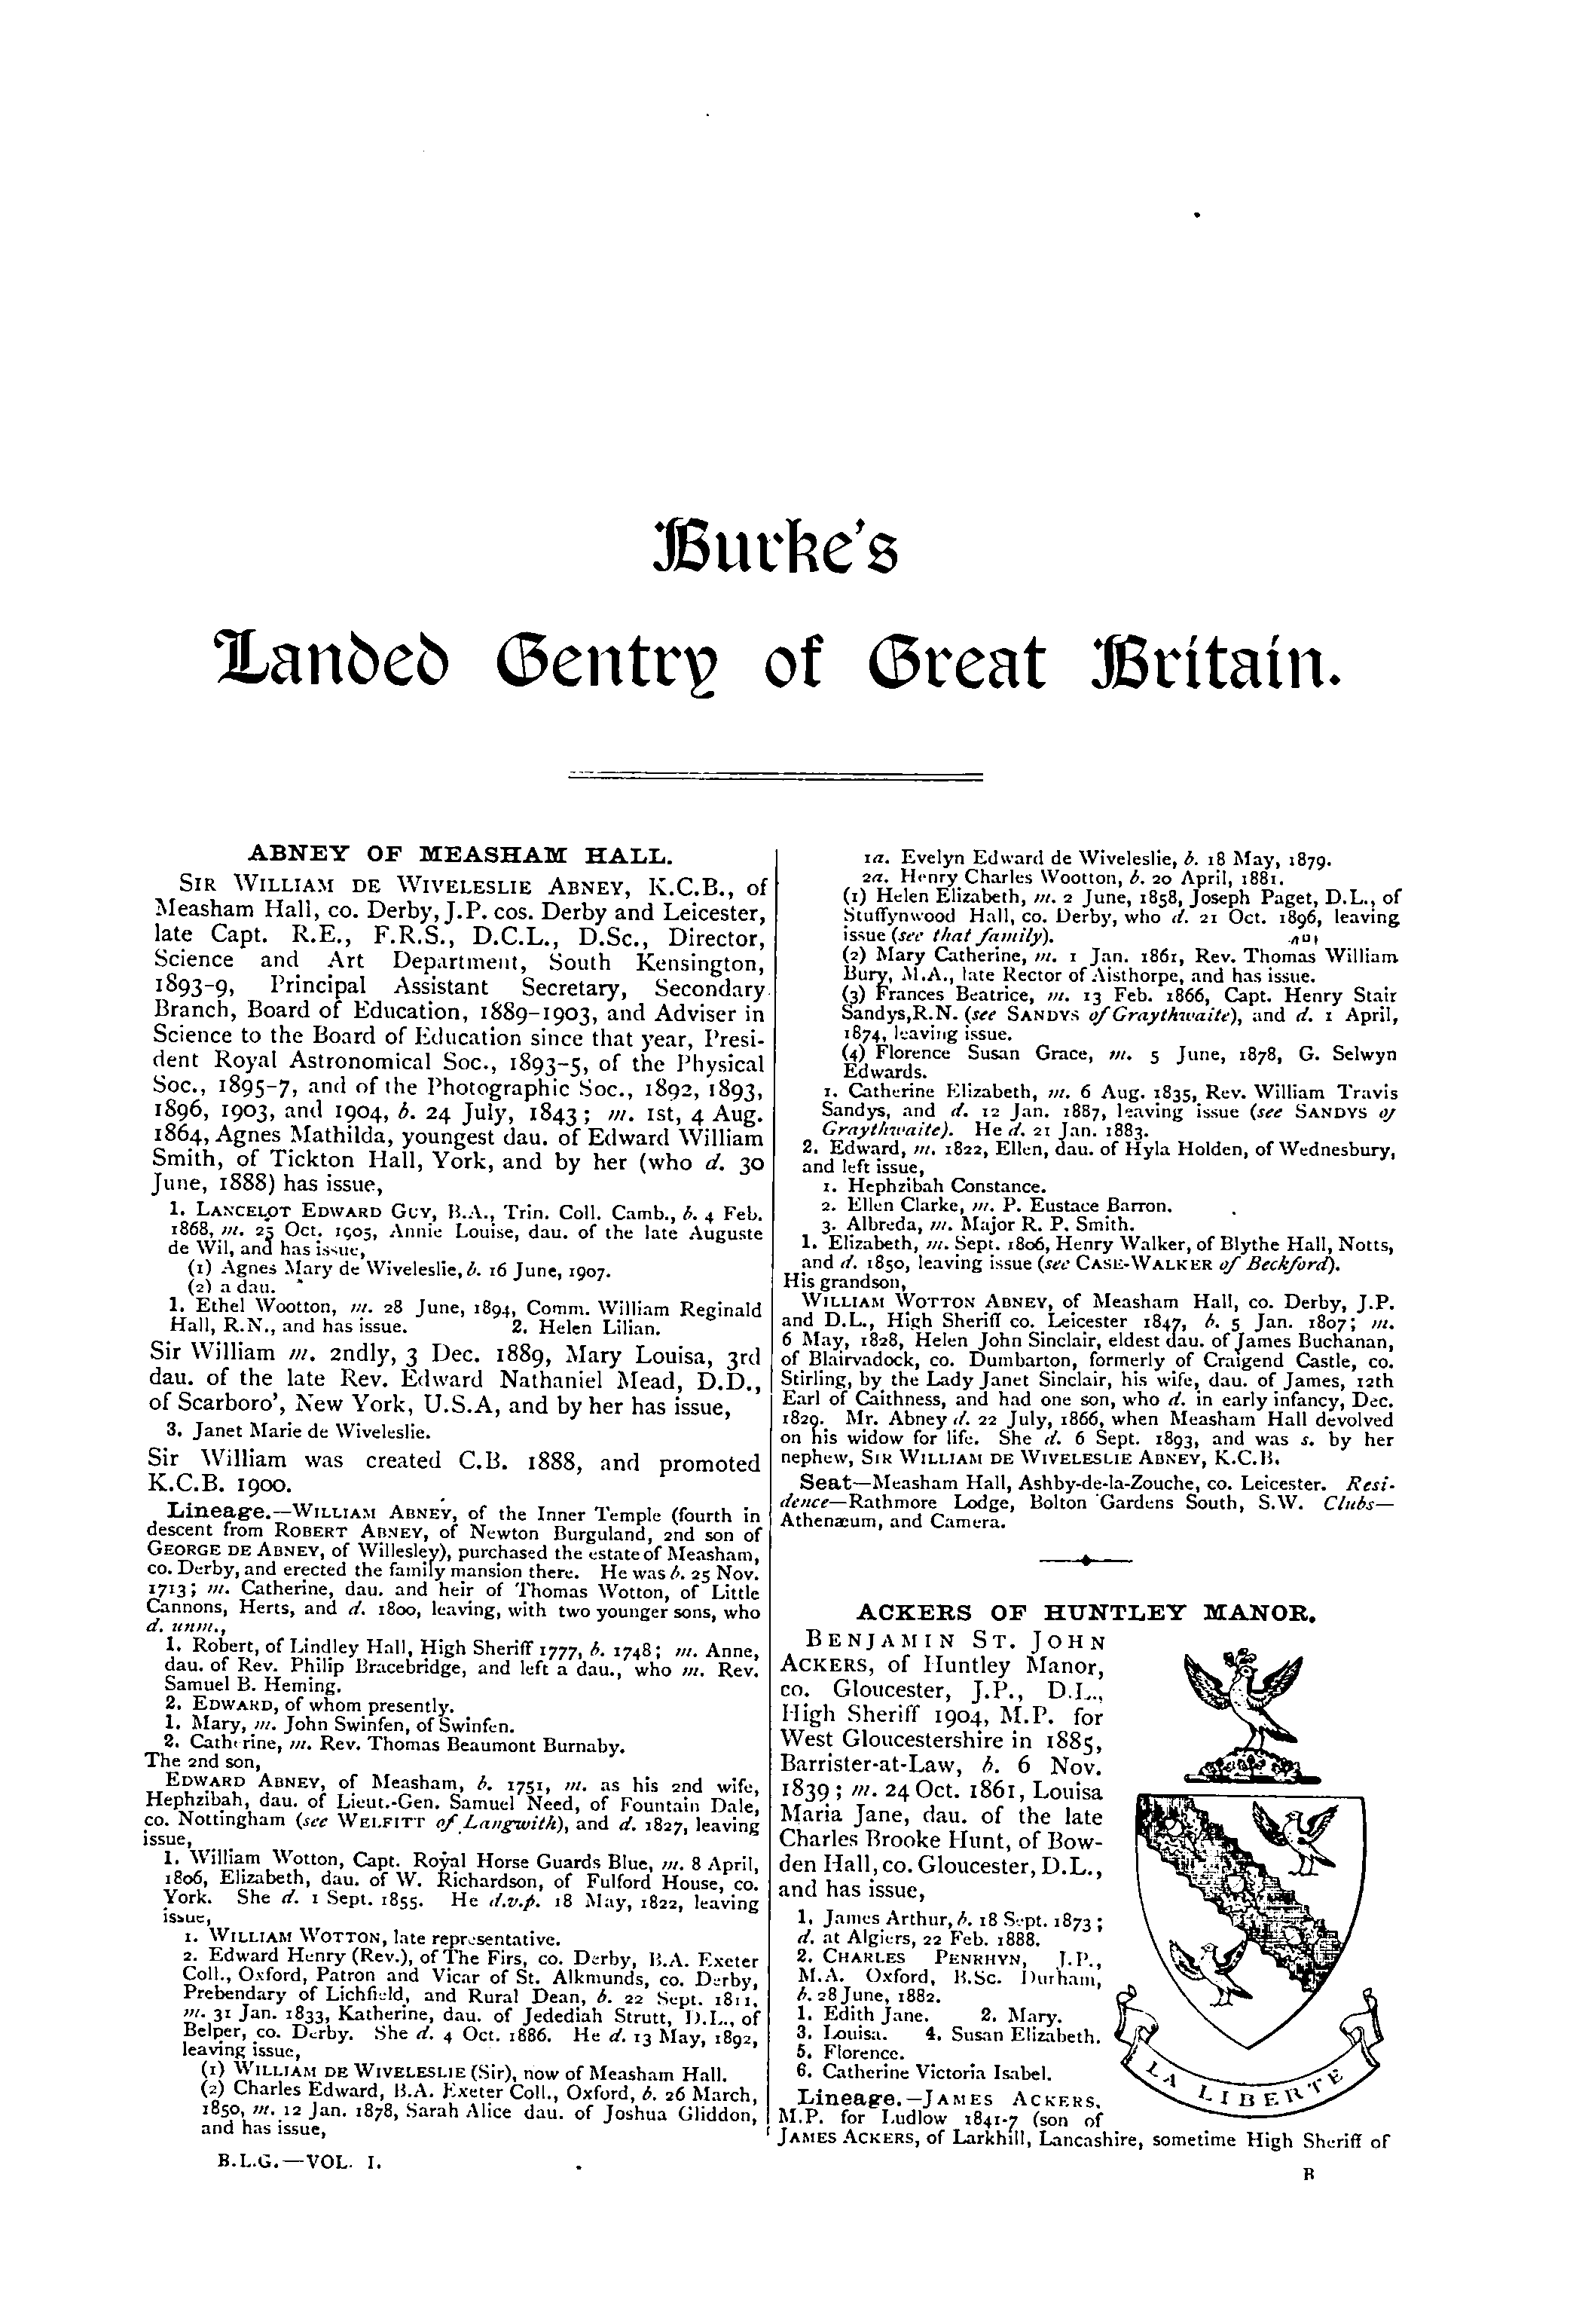 Burke's Landed Gentry, 1914 page 1 - click to open larger version in a new window